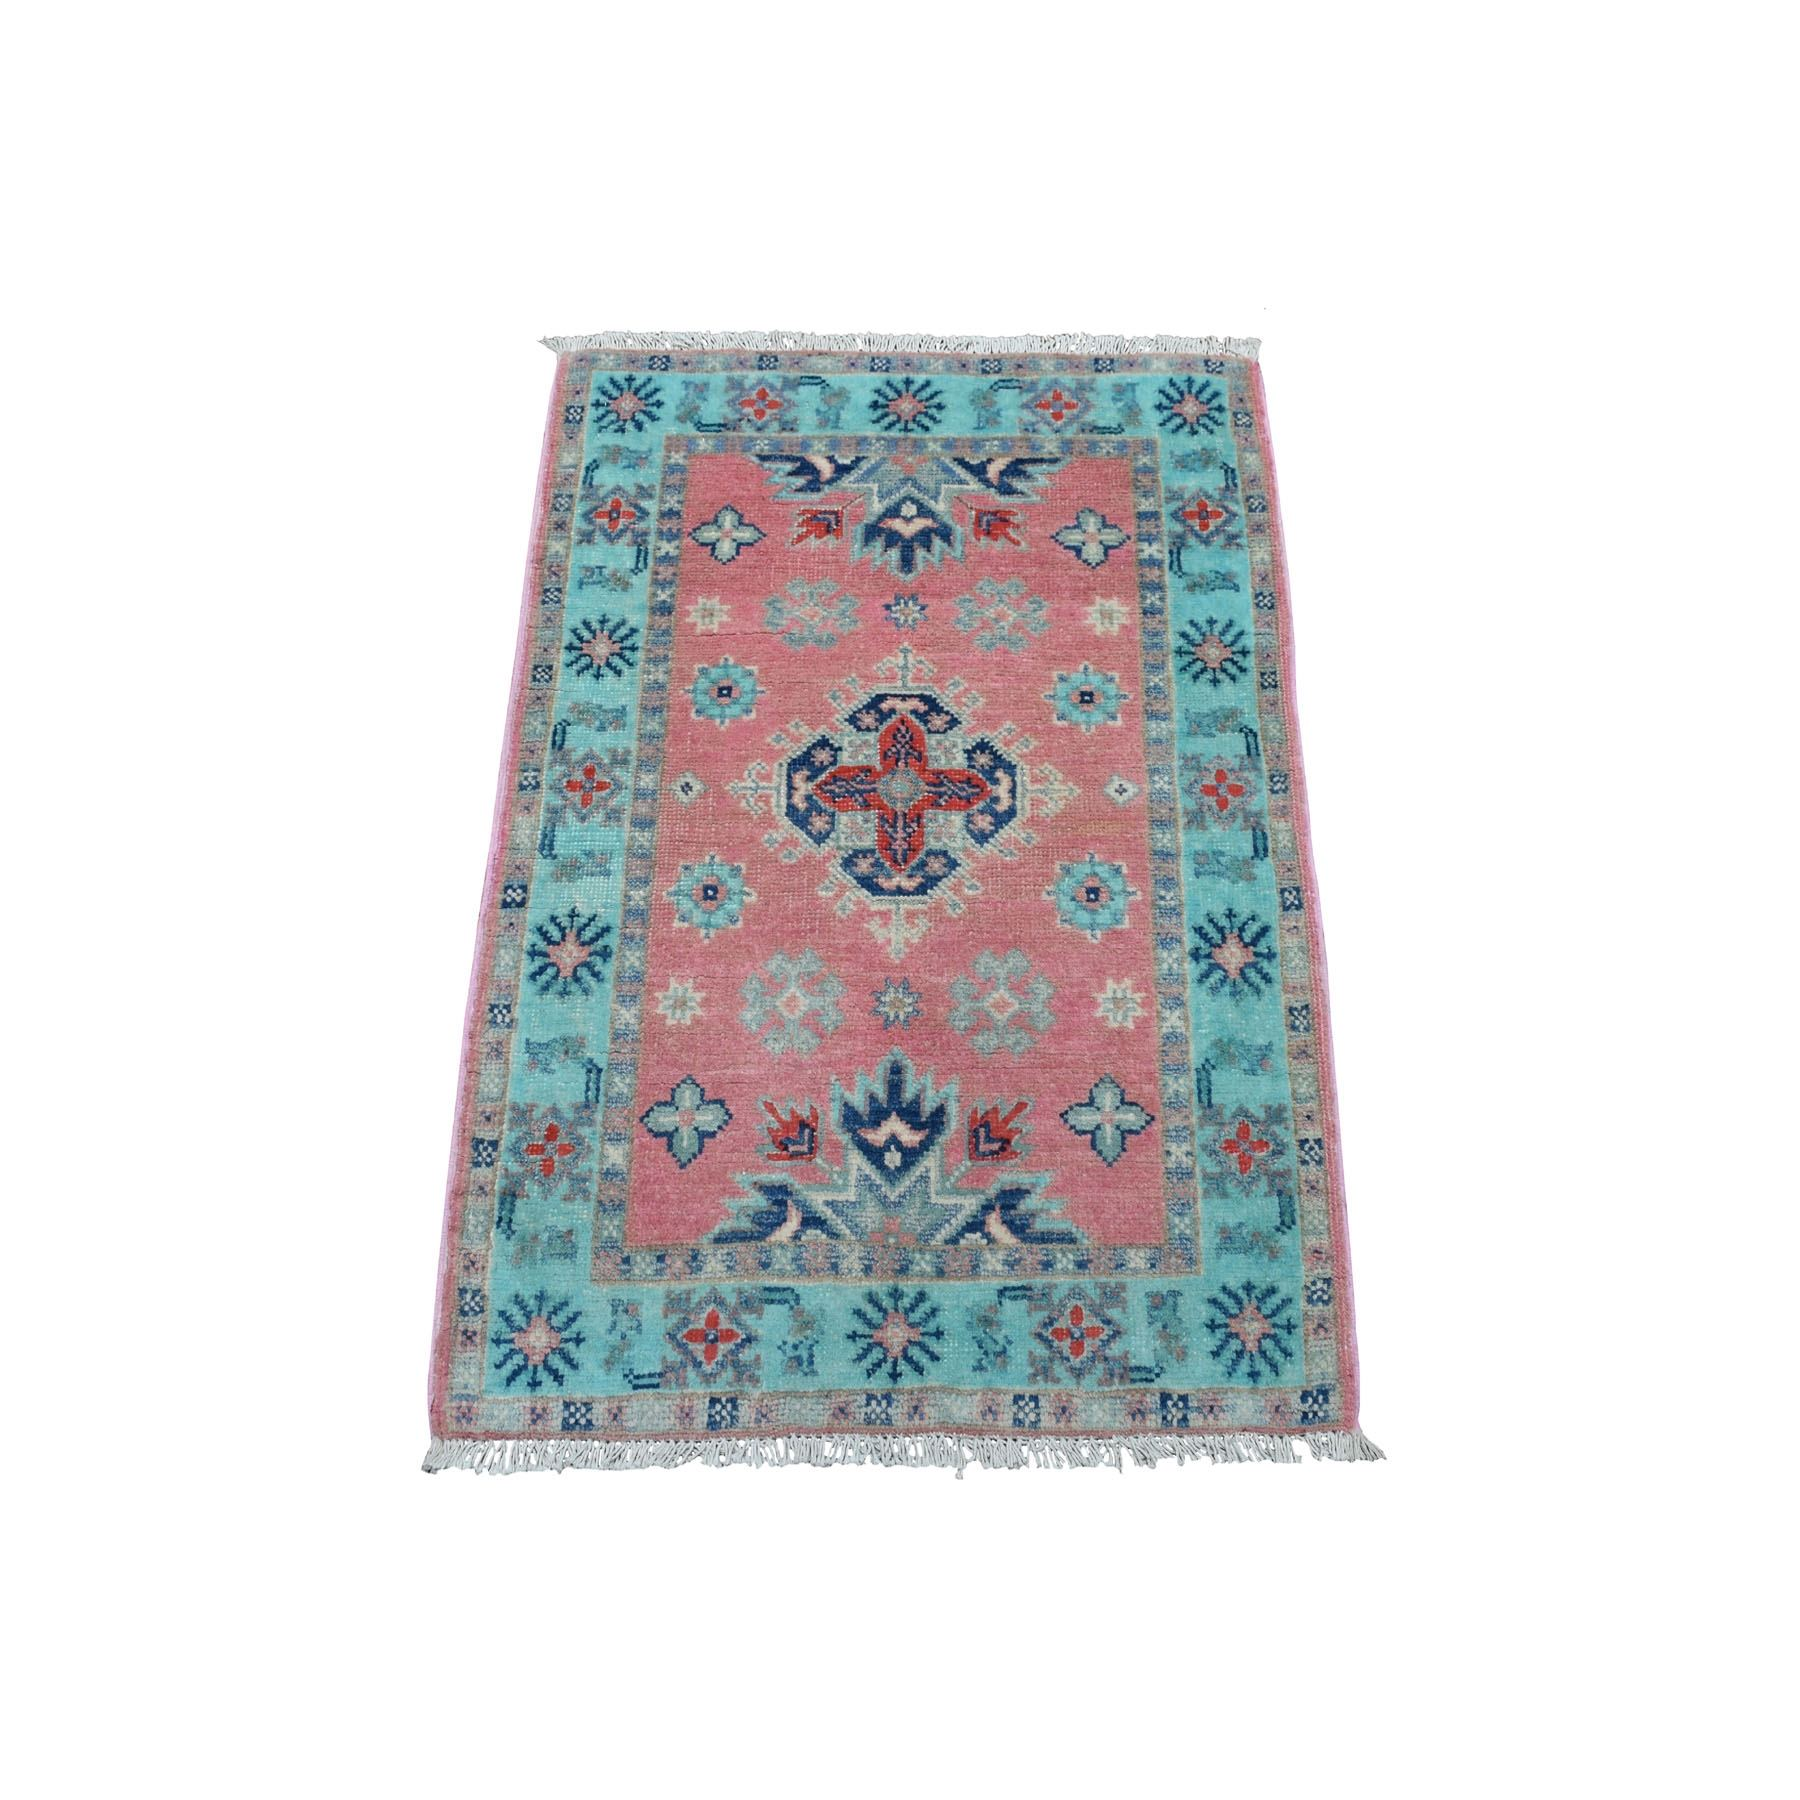 "2'1""x3' Colorful Pink Fusion Kazak Pure Wool Geometric Design Hand Woven Oriental Rug"